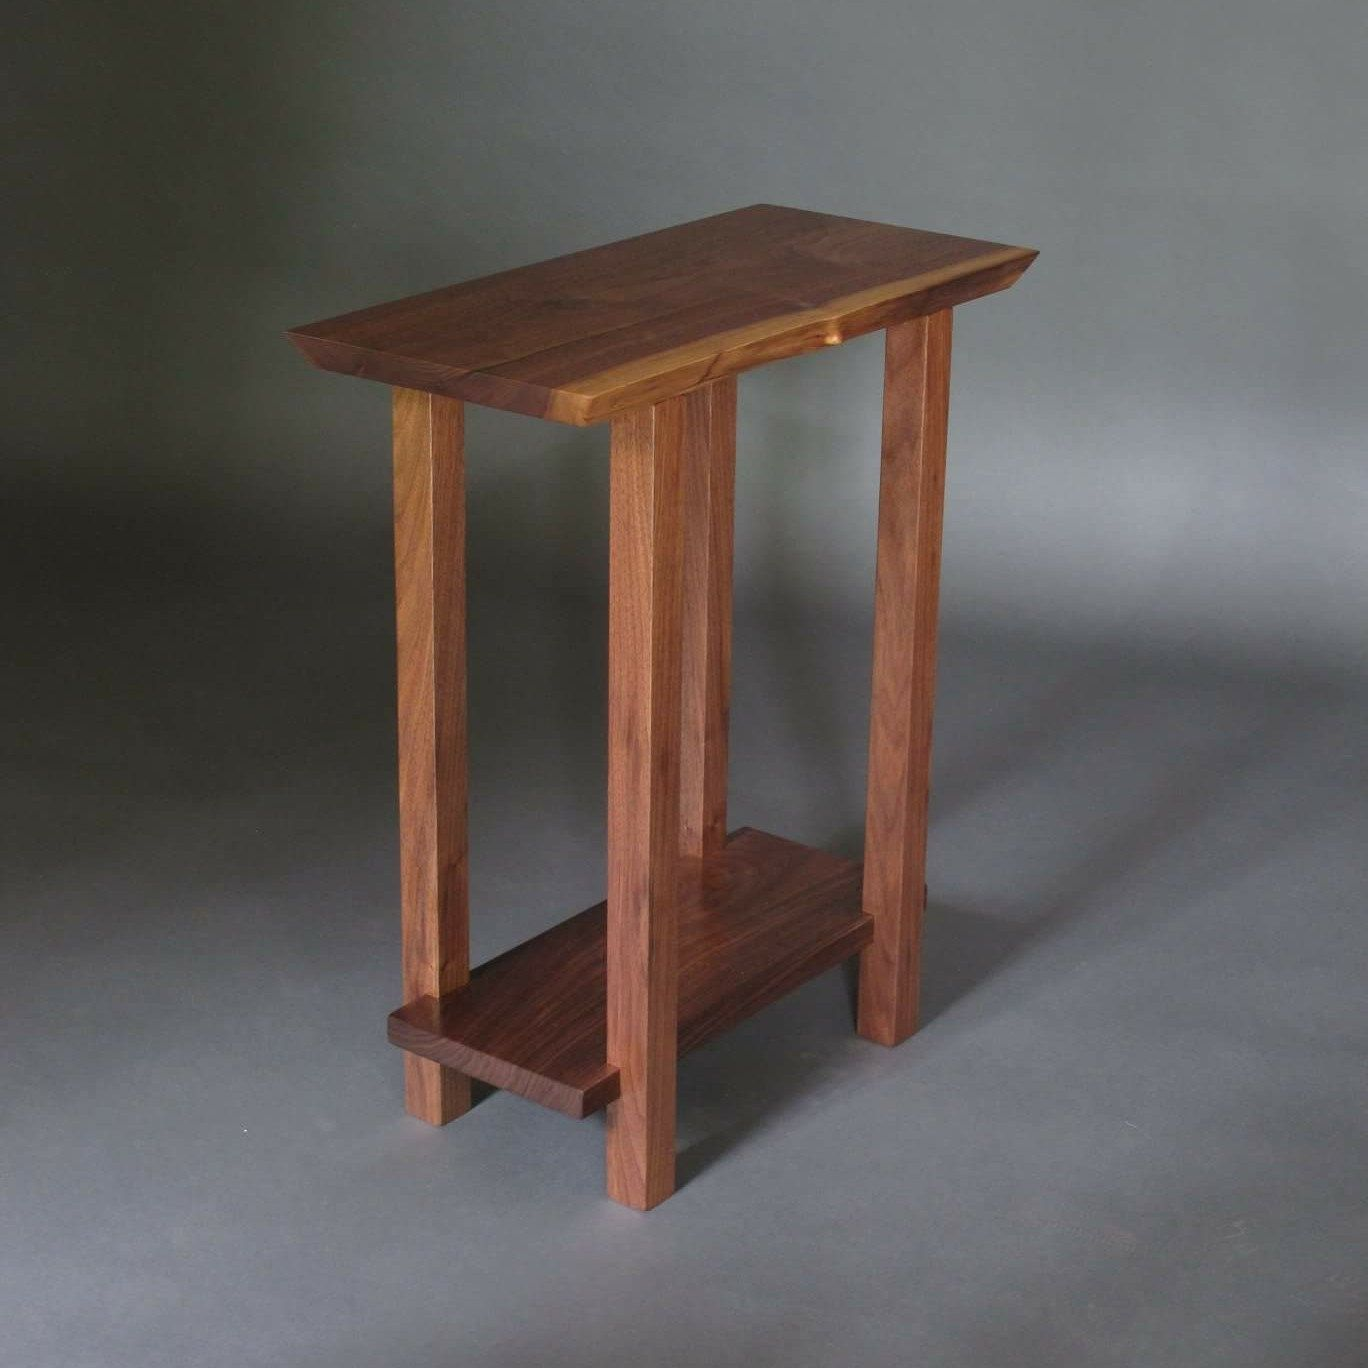 This small narrow table with a live edge table top was created from